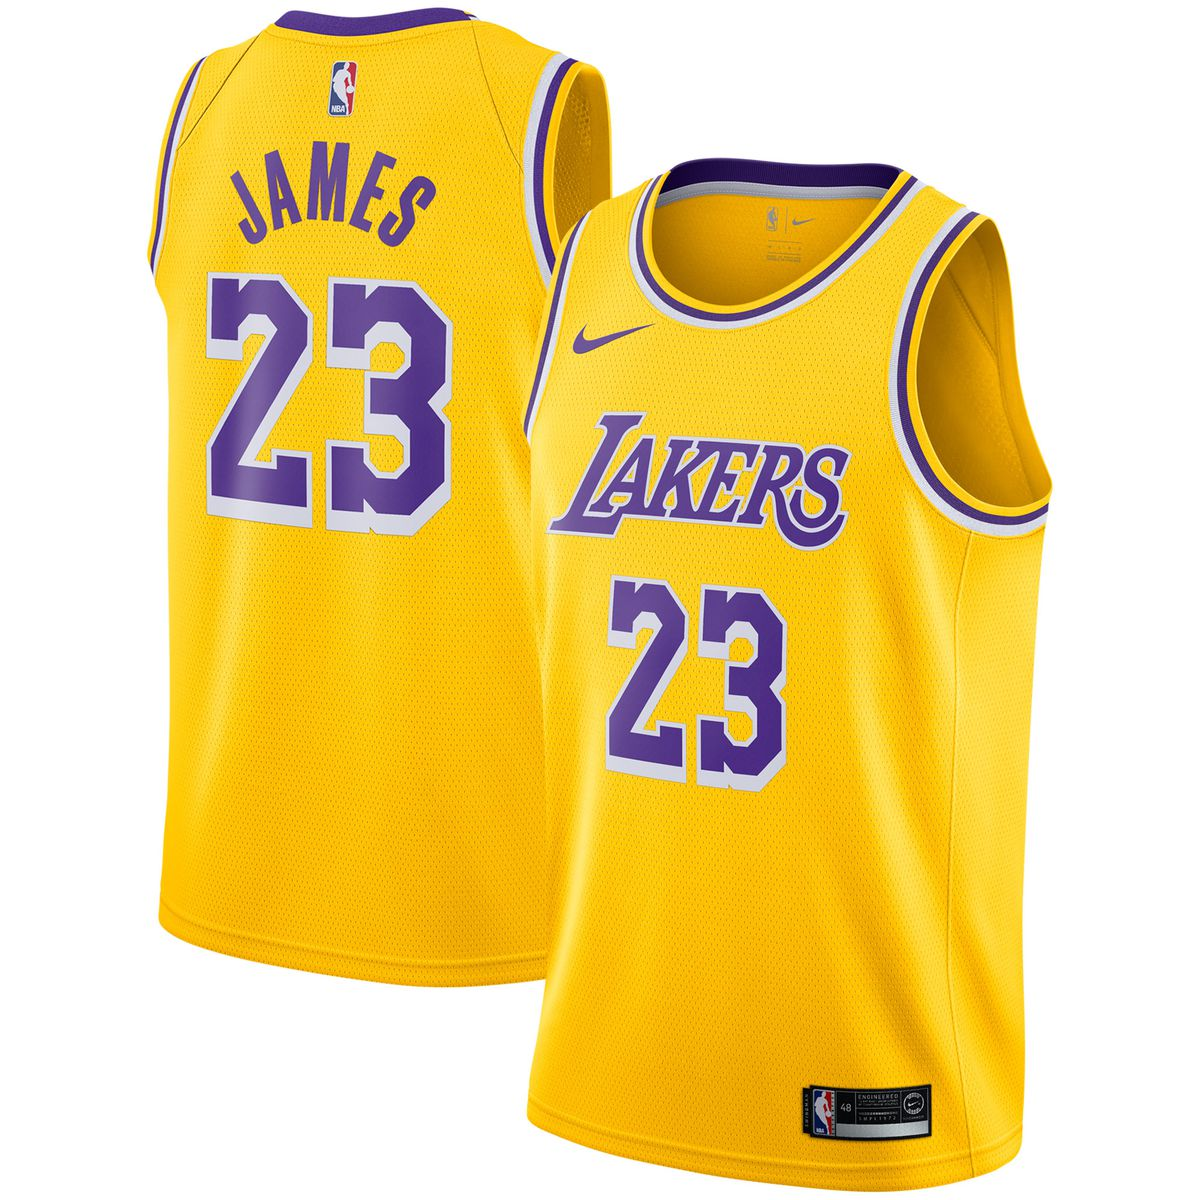 LeBron James Lakers Nike 2018-19 Swingman Jersey for  109.99 Fanatics e2c7d4b4d